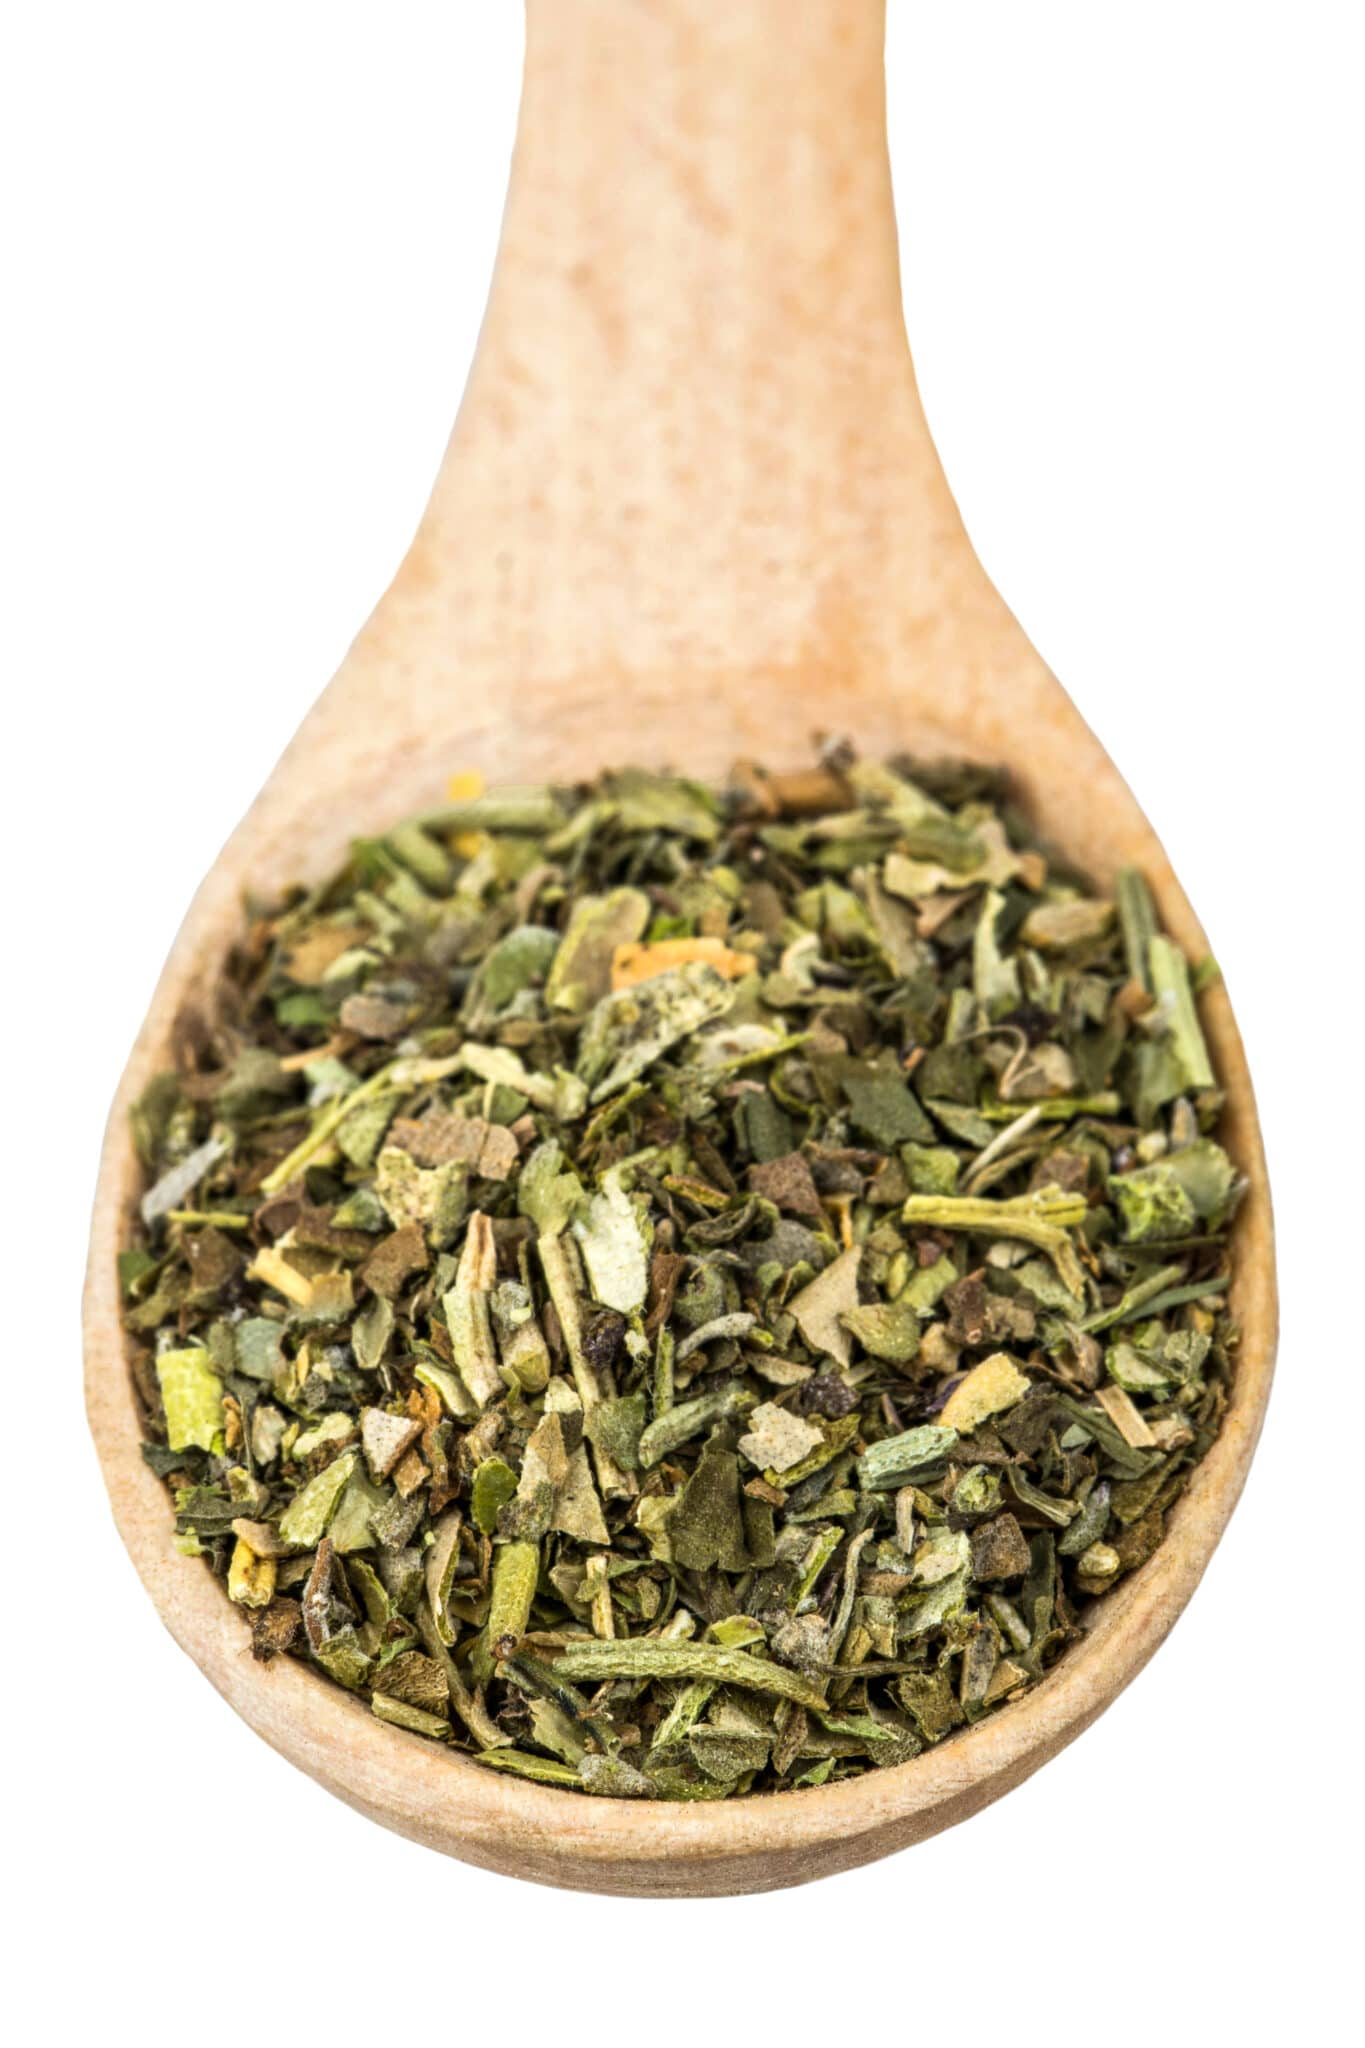 An upclose image of a wooden spoon filled with dried herbs.